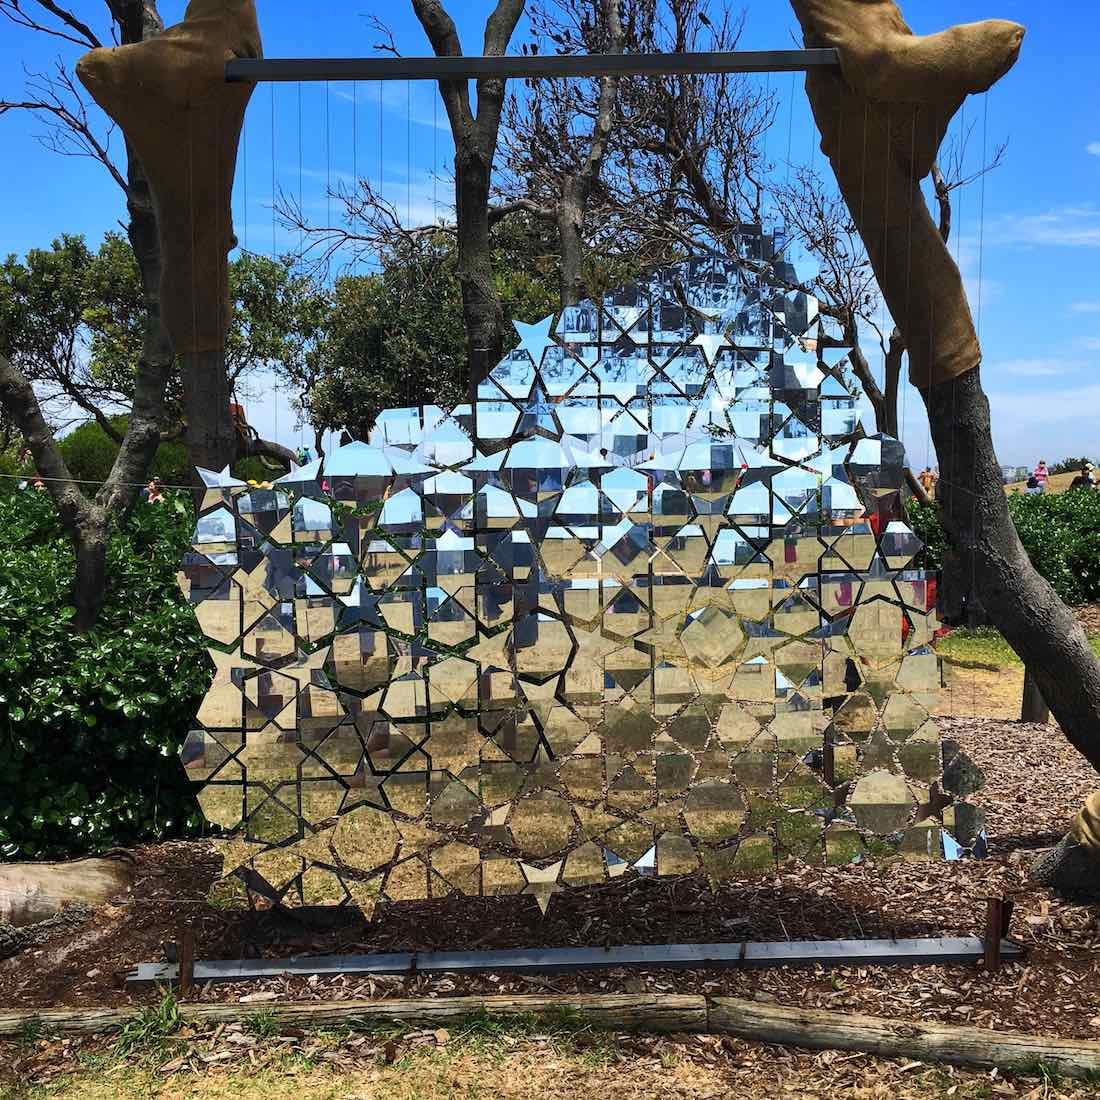 Sculpture-by-the-sea-15-03